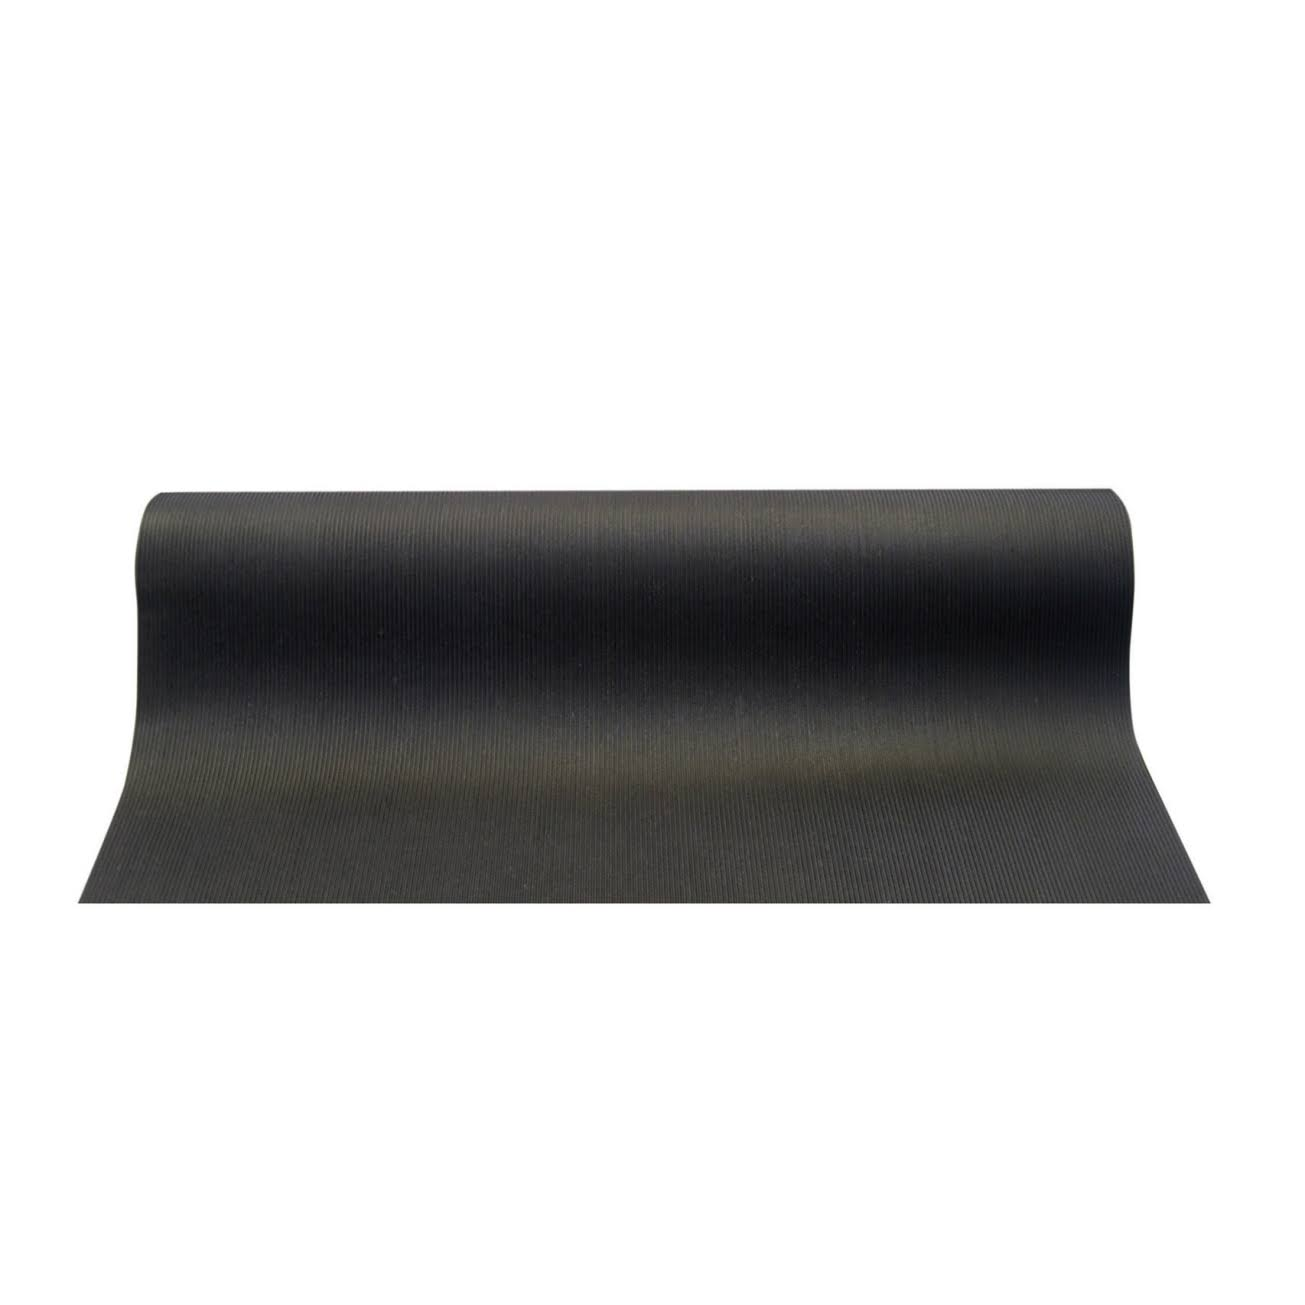 "Dennis VRI3605T Ribbed Vinyl Runner - Black, 36"" x 75'"